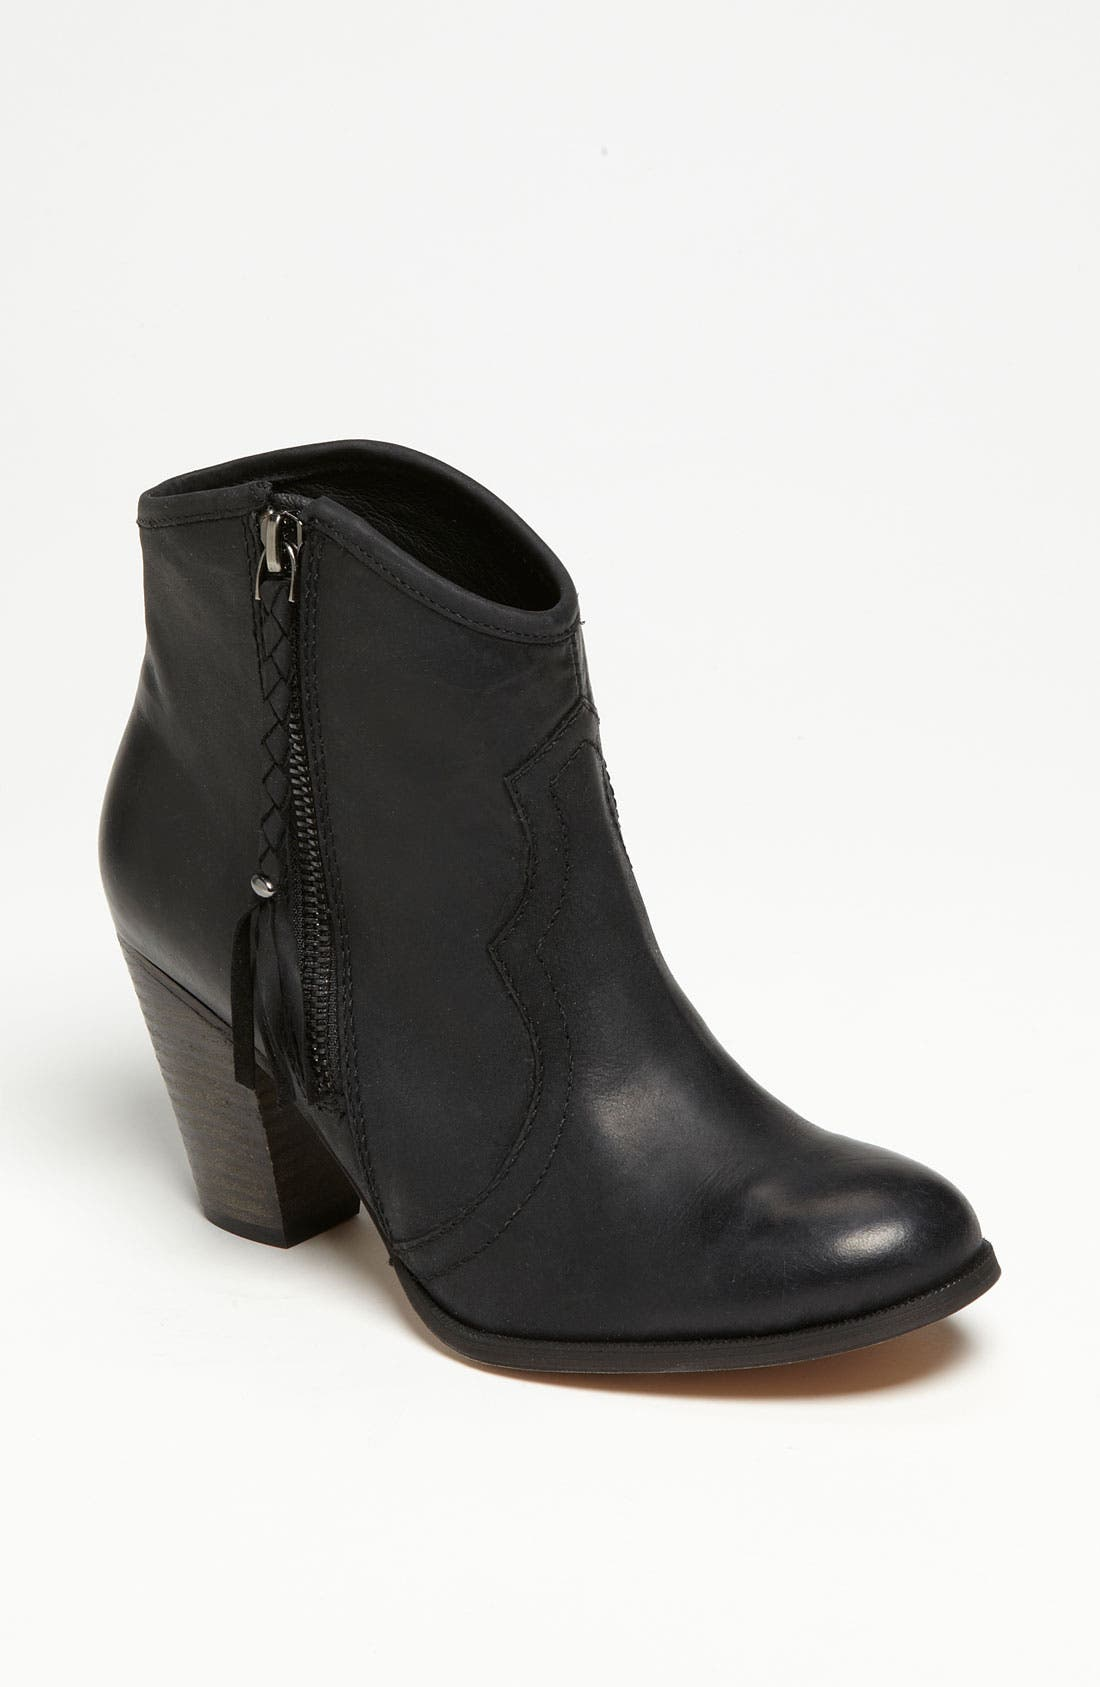 'Fastrost' Boot,                             Main thumbnail 1, color,                             Black Leather